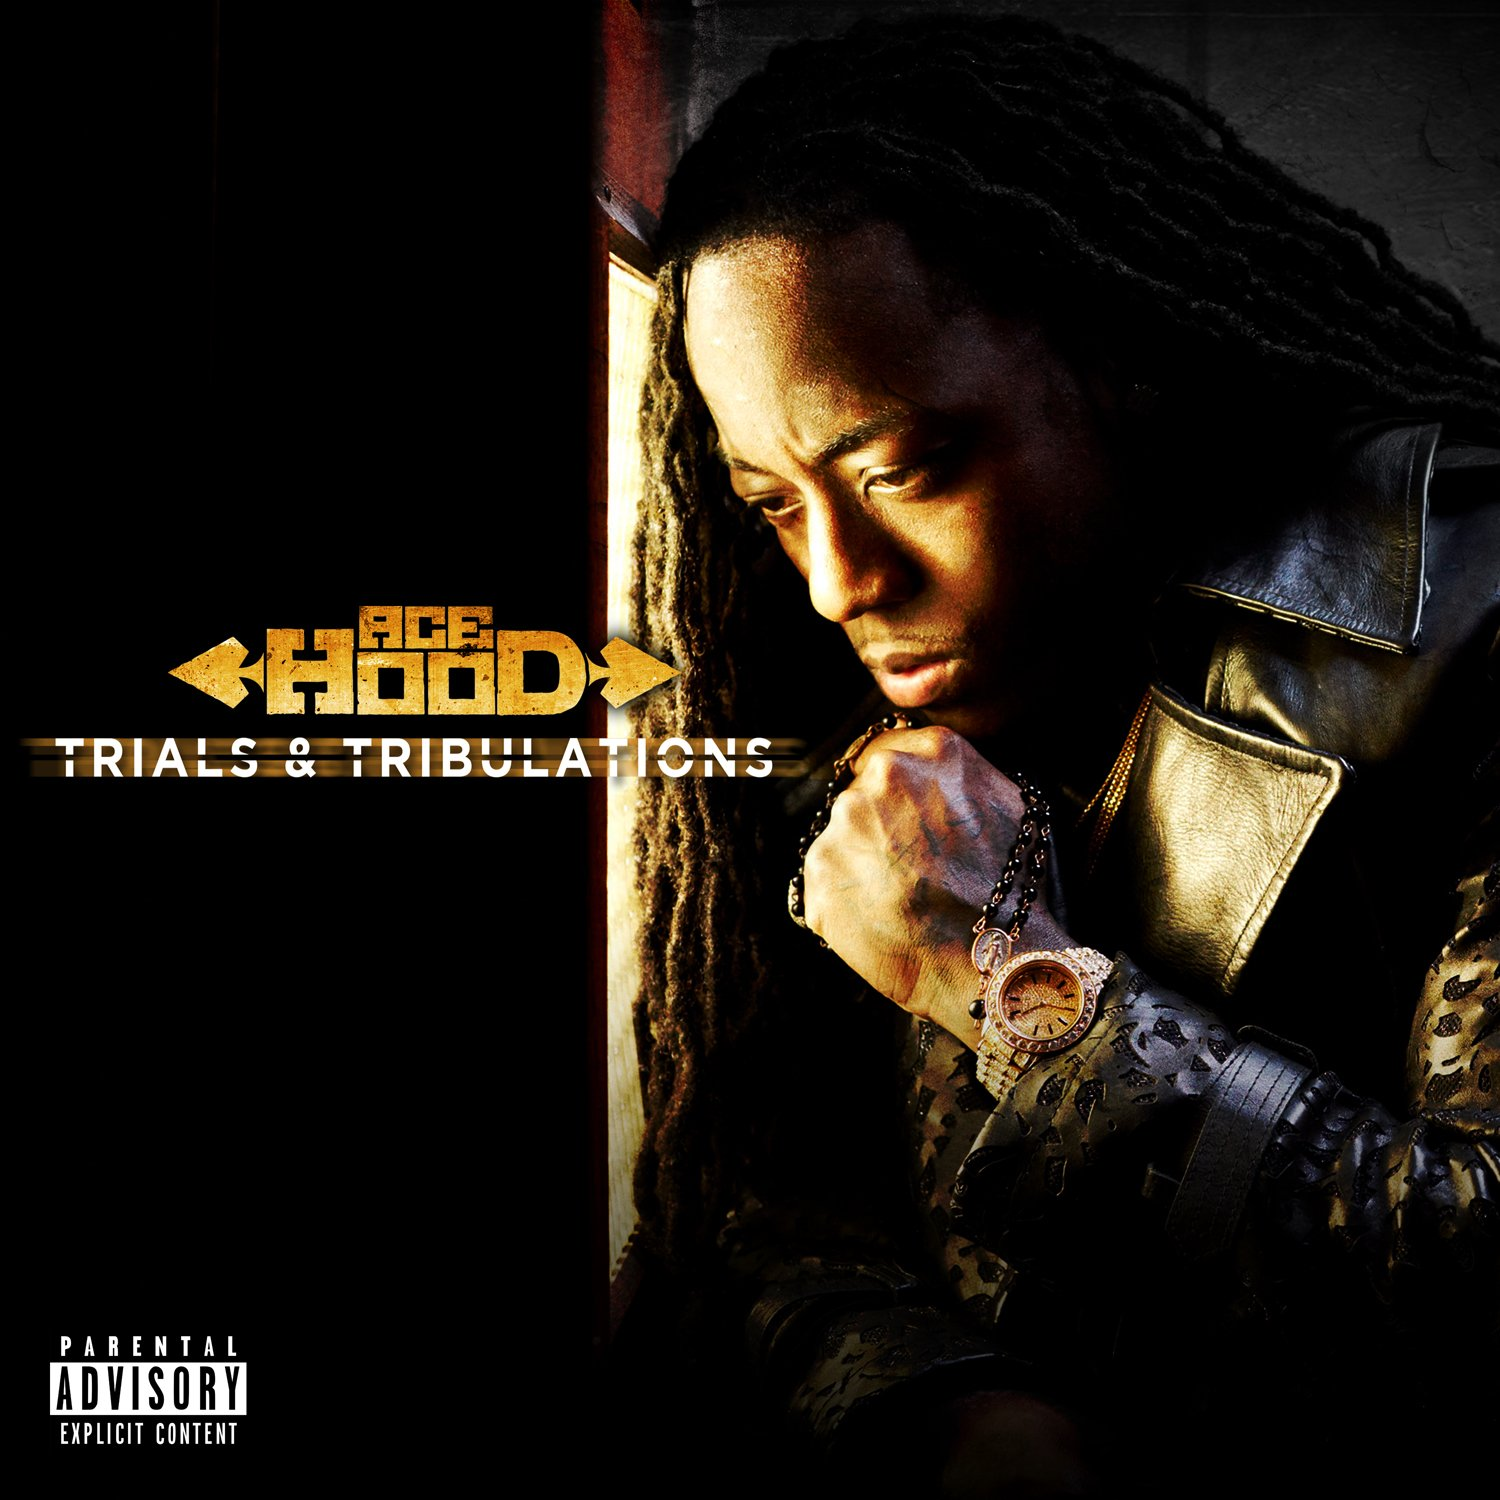 ace hood trials and tribulations album free download